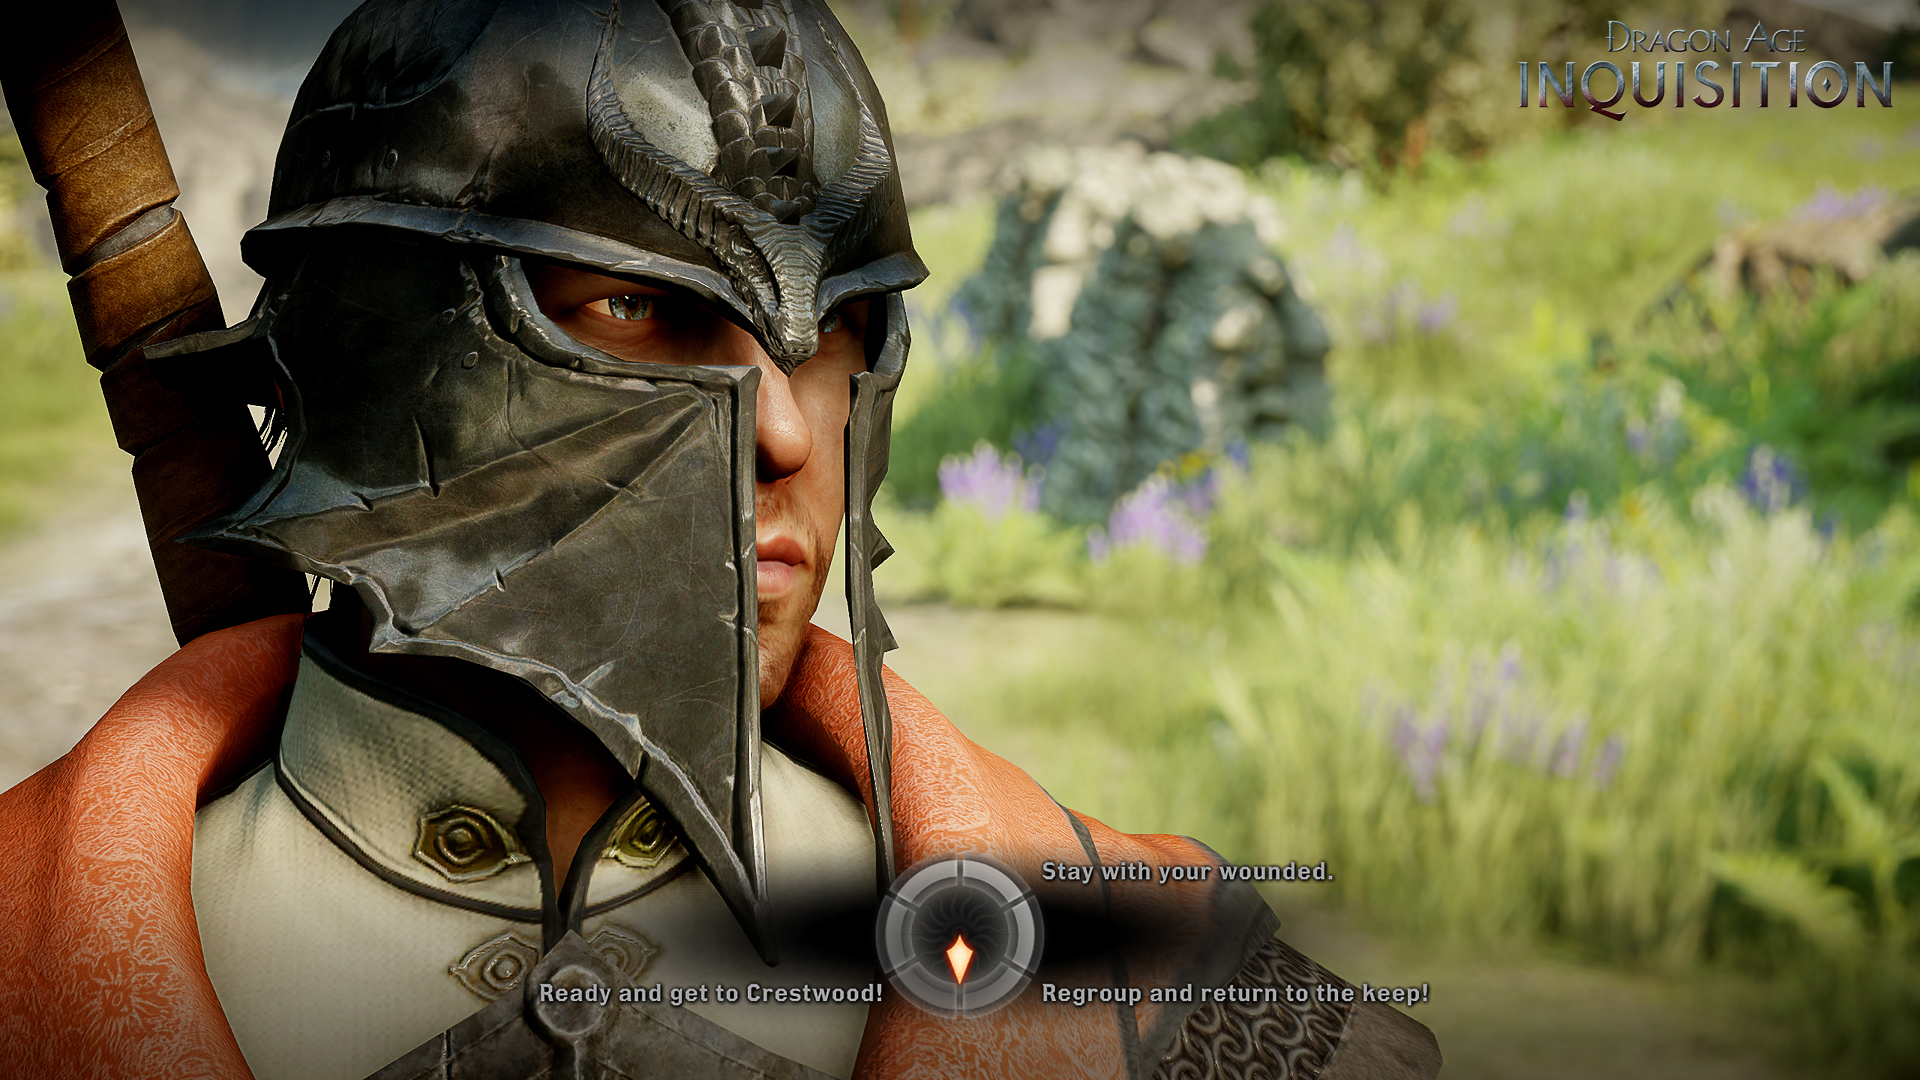 Dragon Age: Inquisition has playable Qunari, tactical view